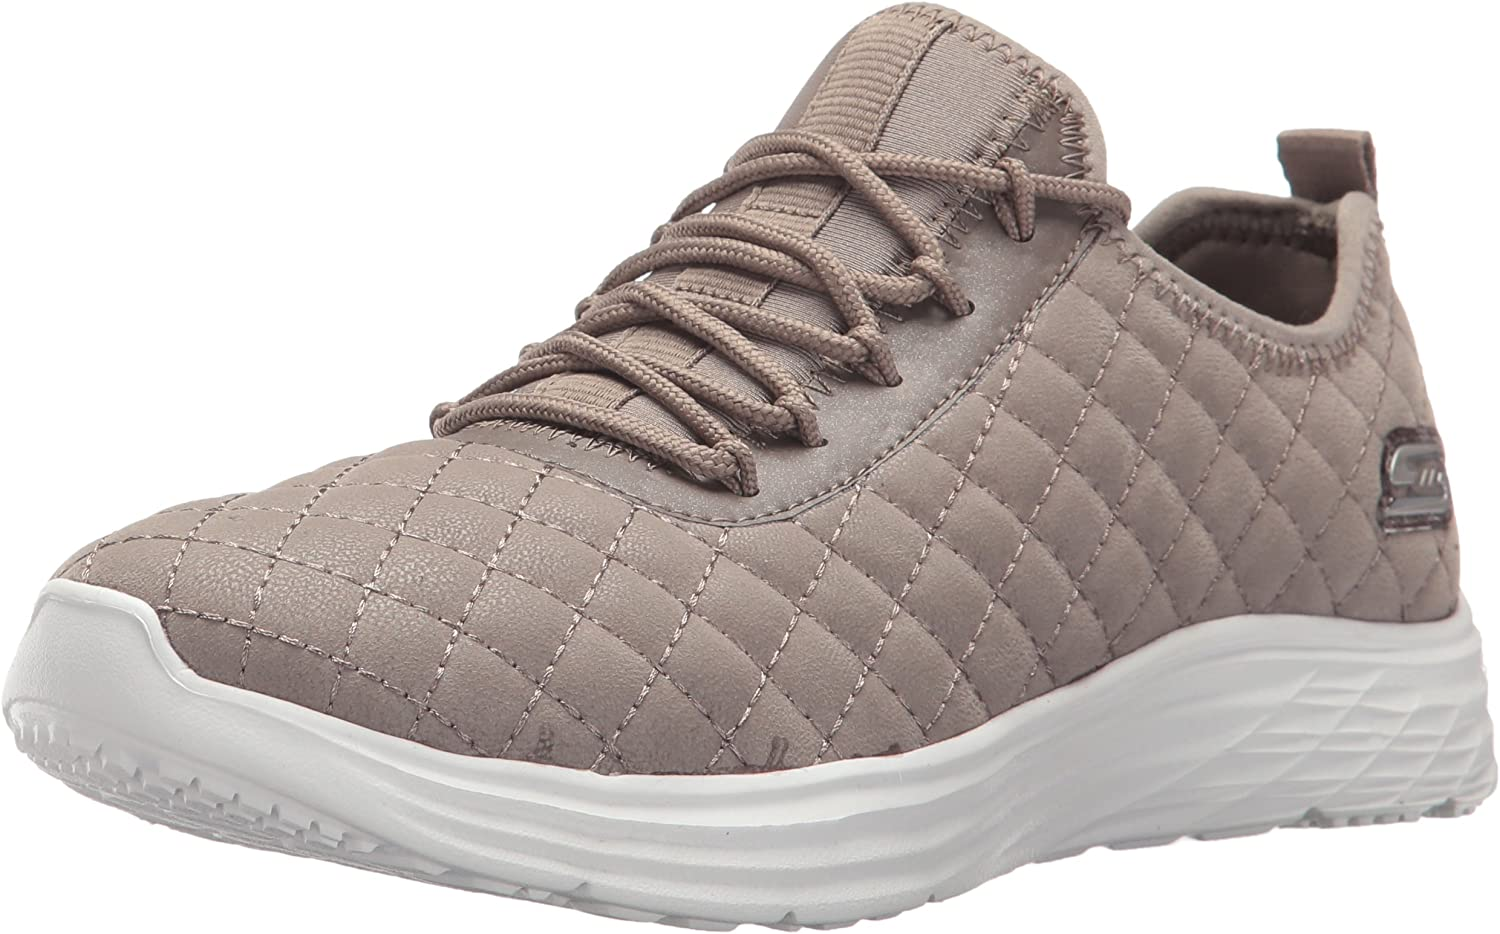 Skechers Womens Bobs Swift - Strobe Light Fashion Sneaker